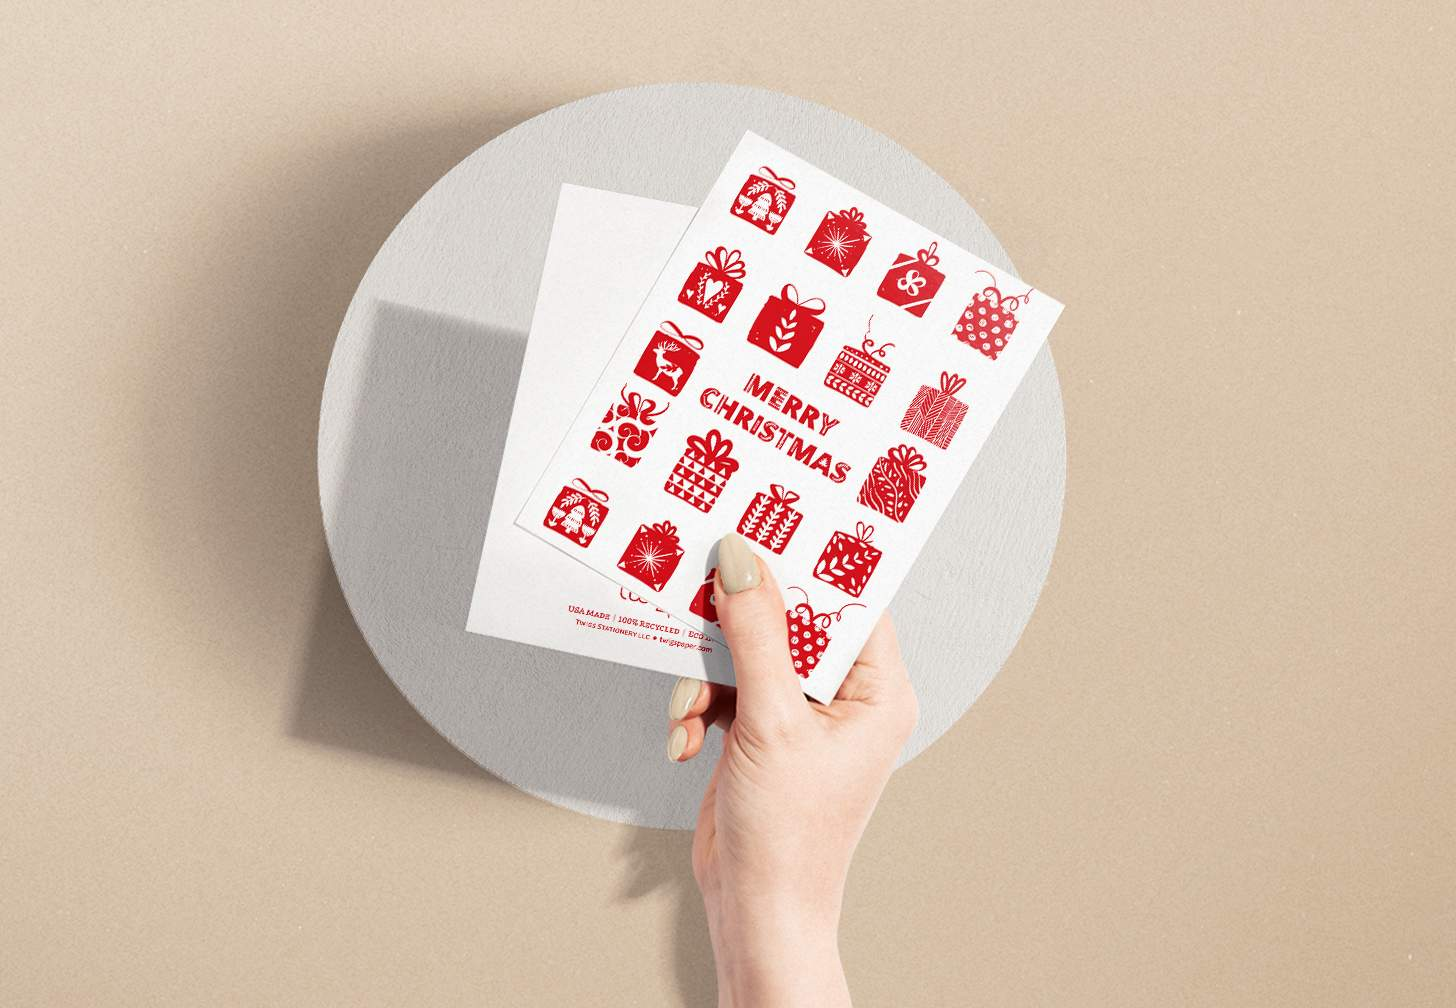 Hands holding Red and white Merry Christmas with presents design